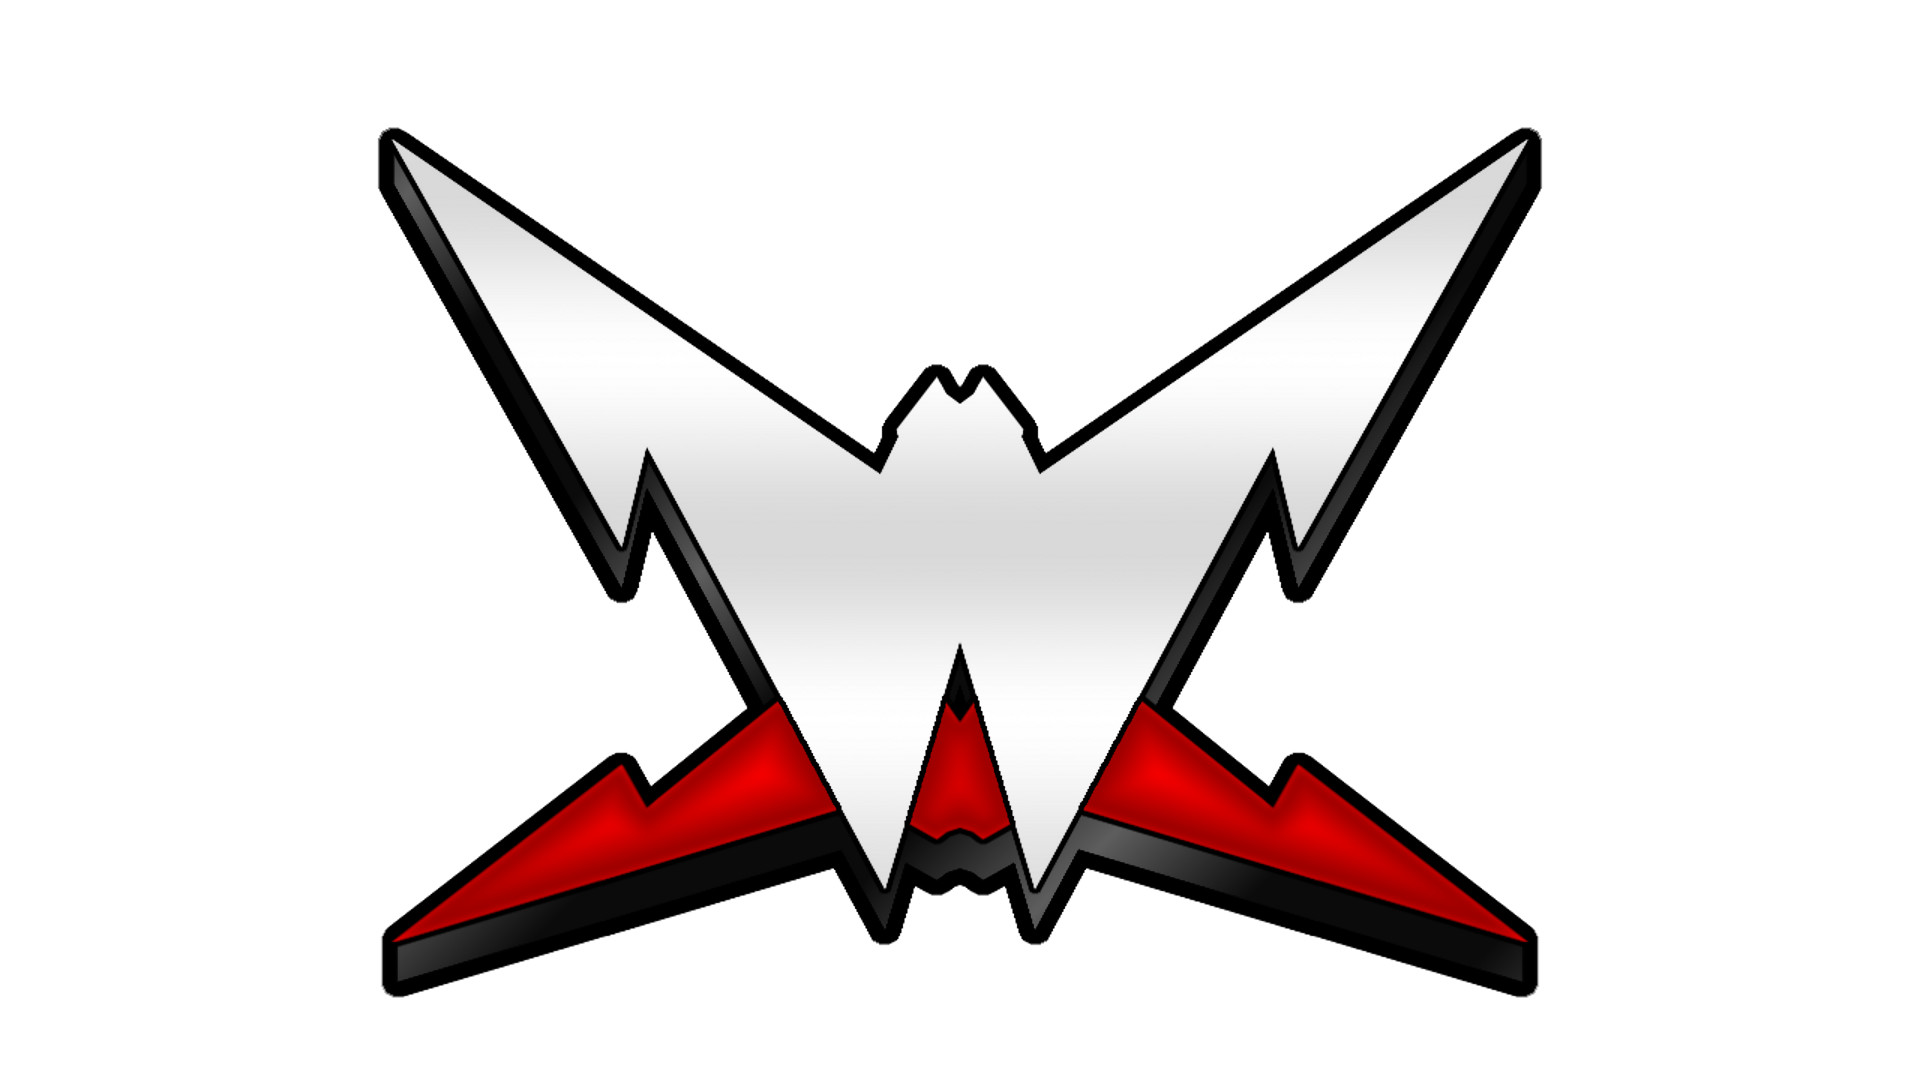 1920x1080 Great Wwe Logo Creator 35 About Remodel Free Logo Generator With Wwe Logo  Creator